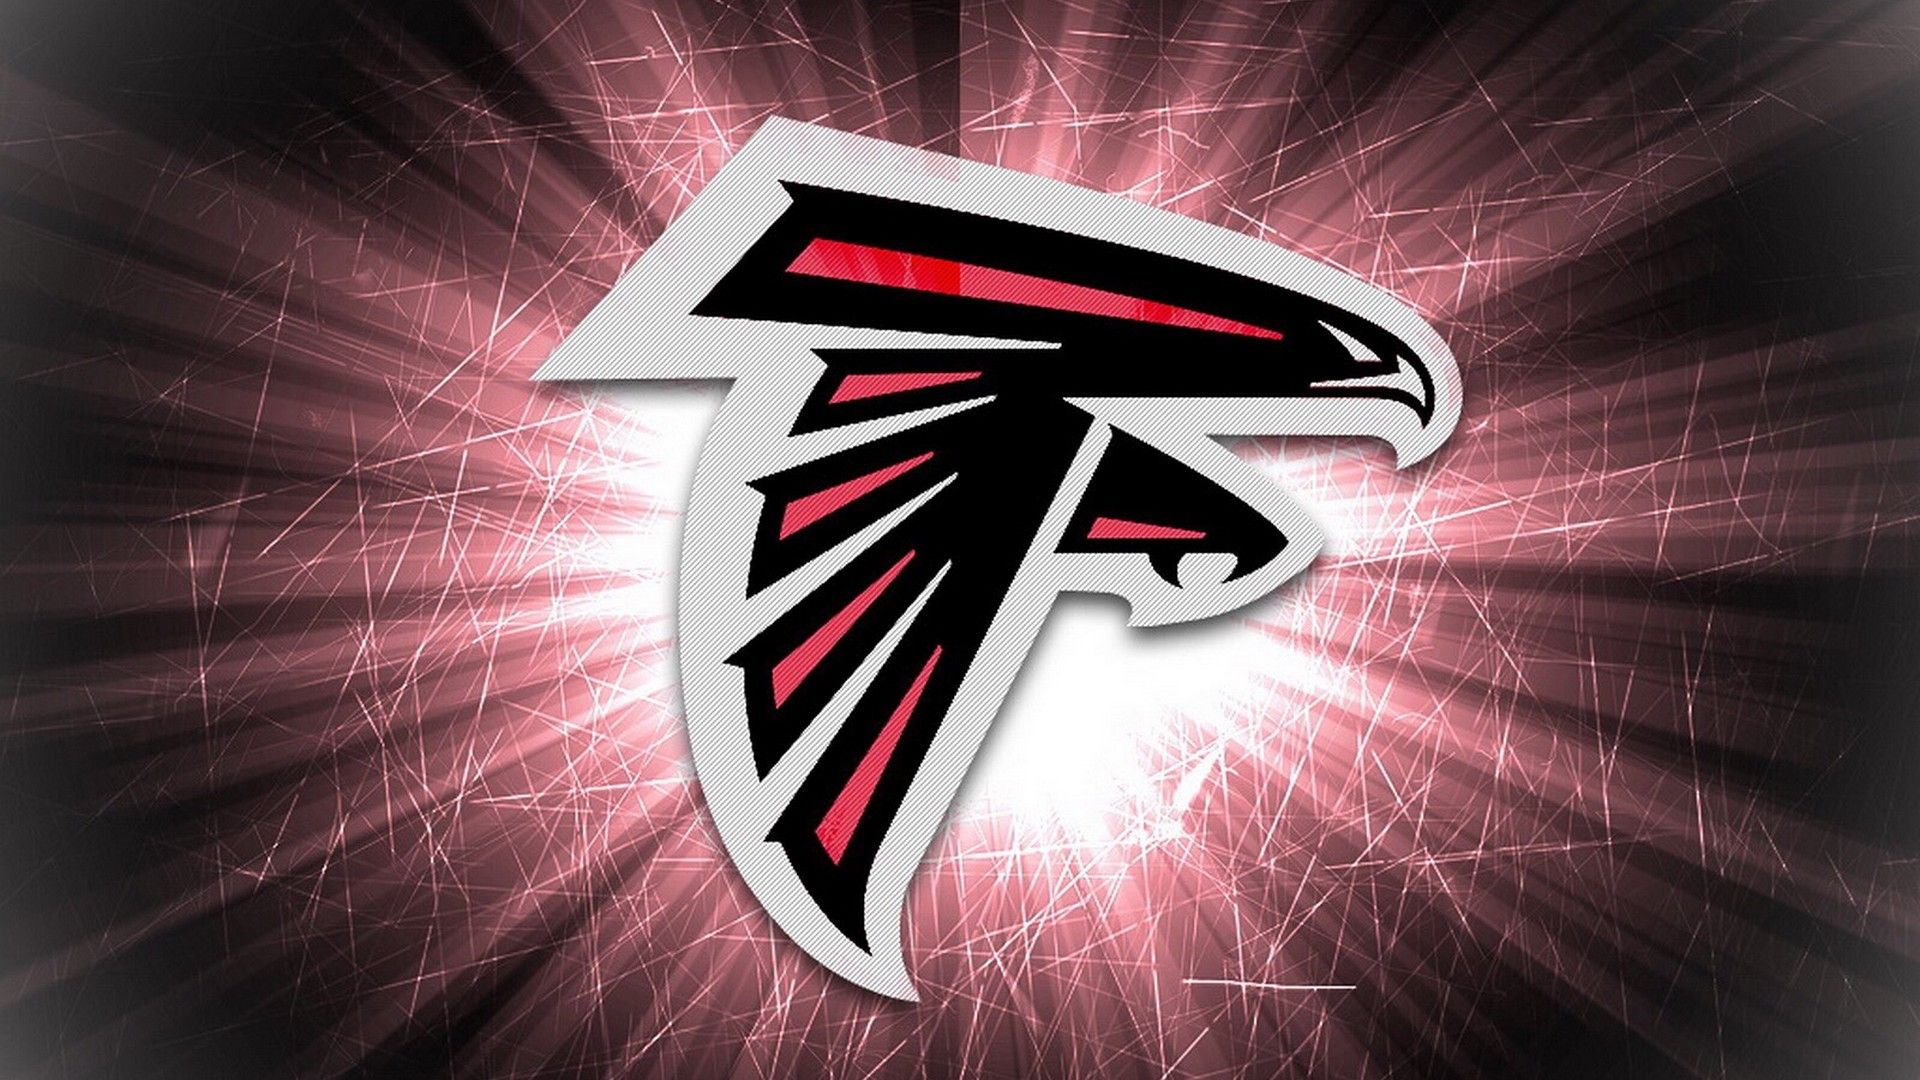 Nfl Wallpapers Atlanta Falcons Logo Atlanta Falcons Wallpaper Atlanta Falcons Background